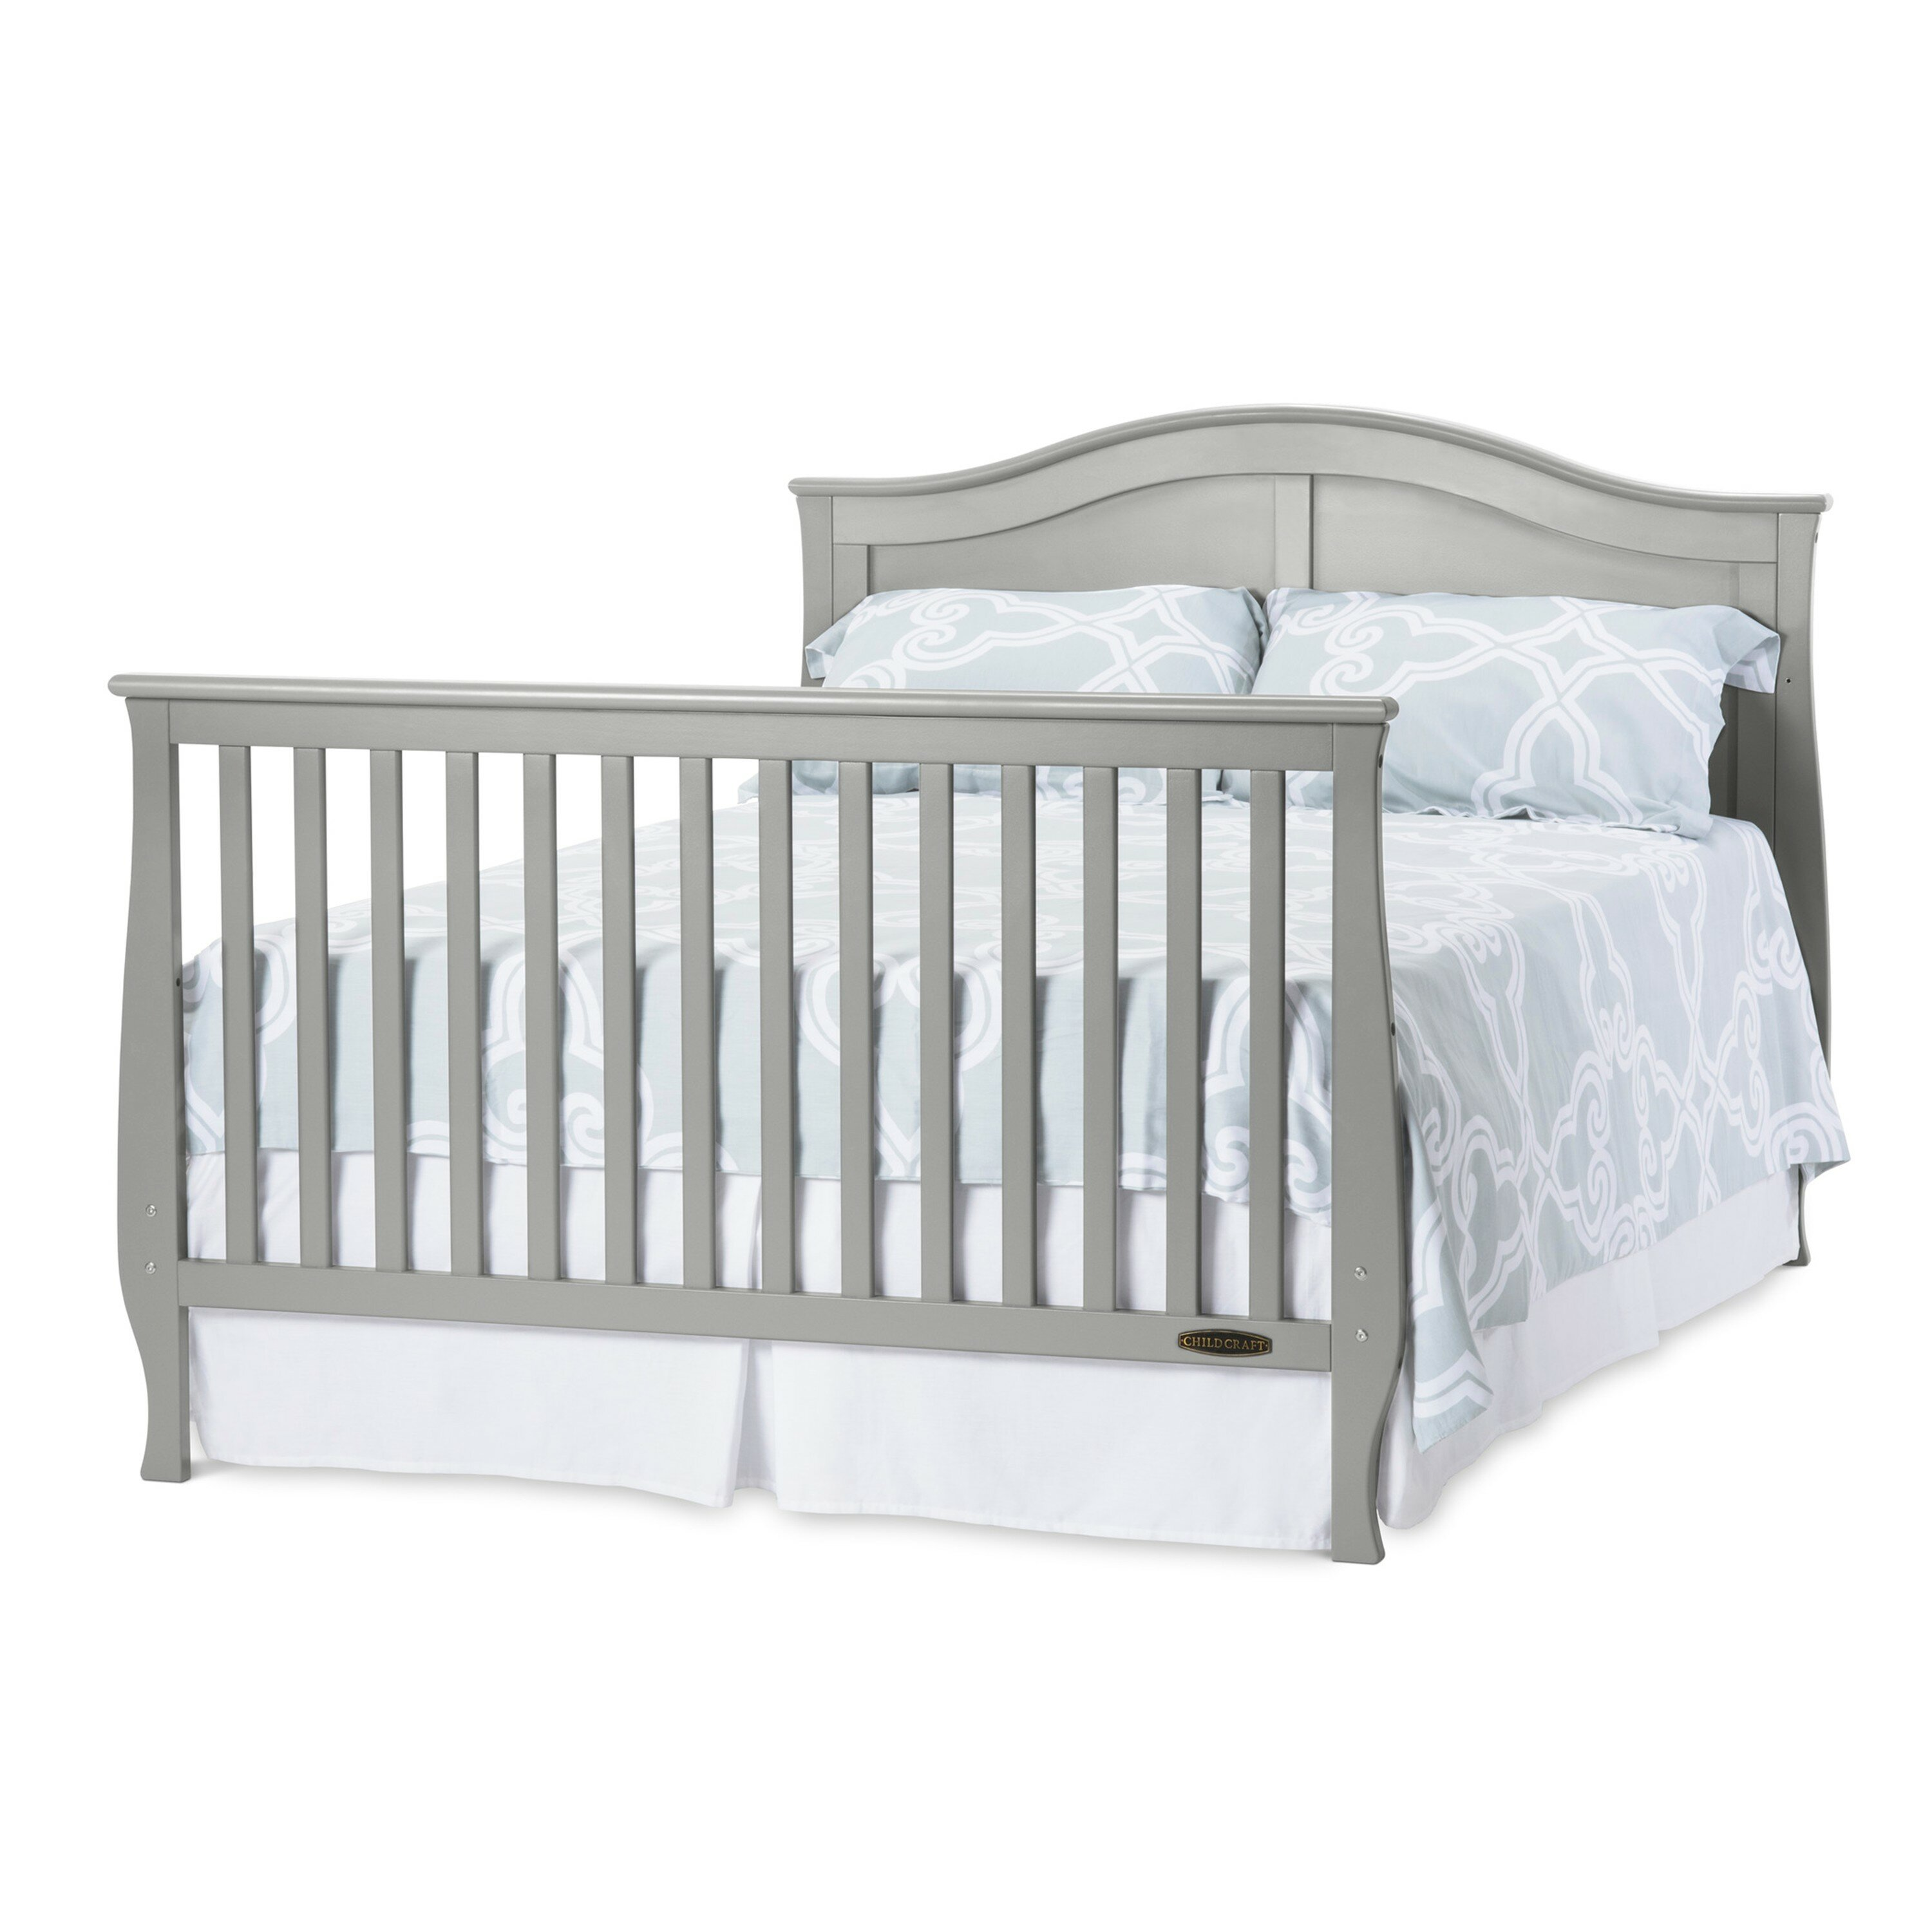 Crib hardware for sale - Child Craft Camden 4 In 1 Convertible Crib